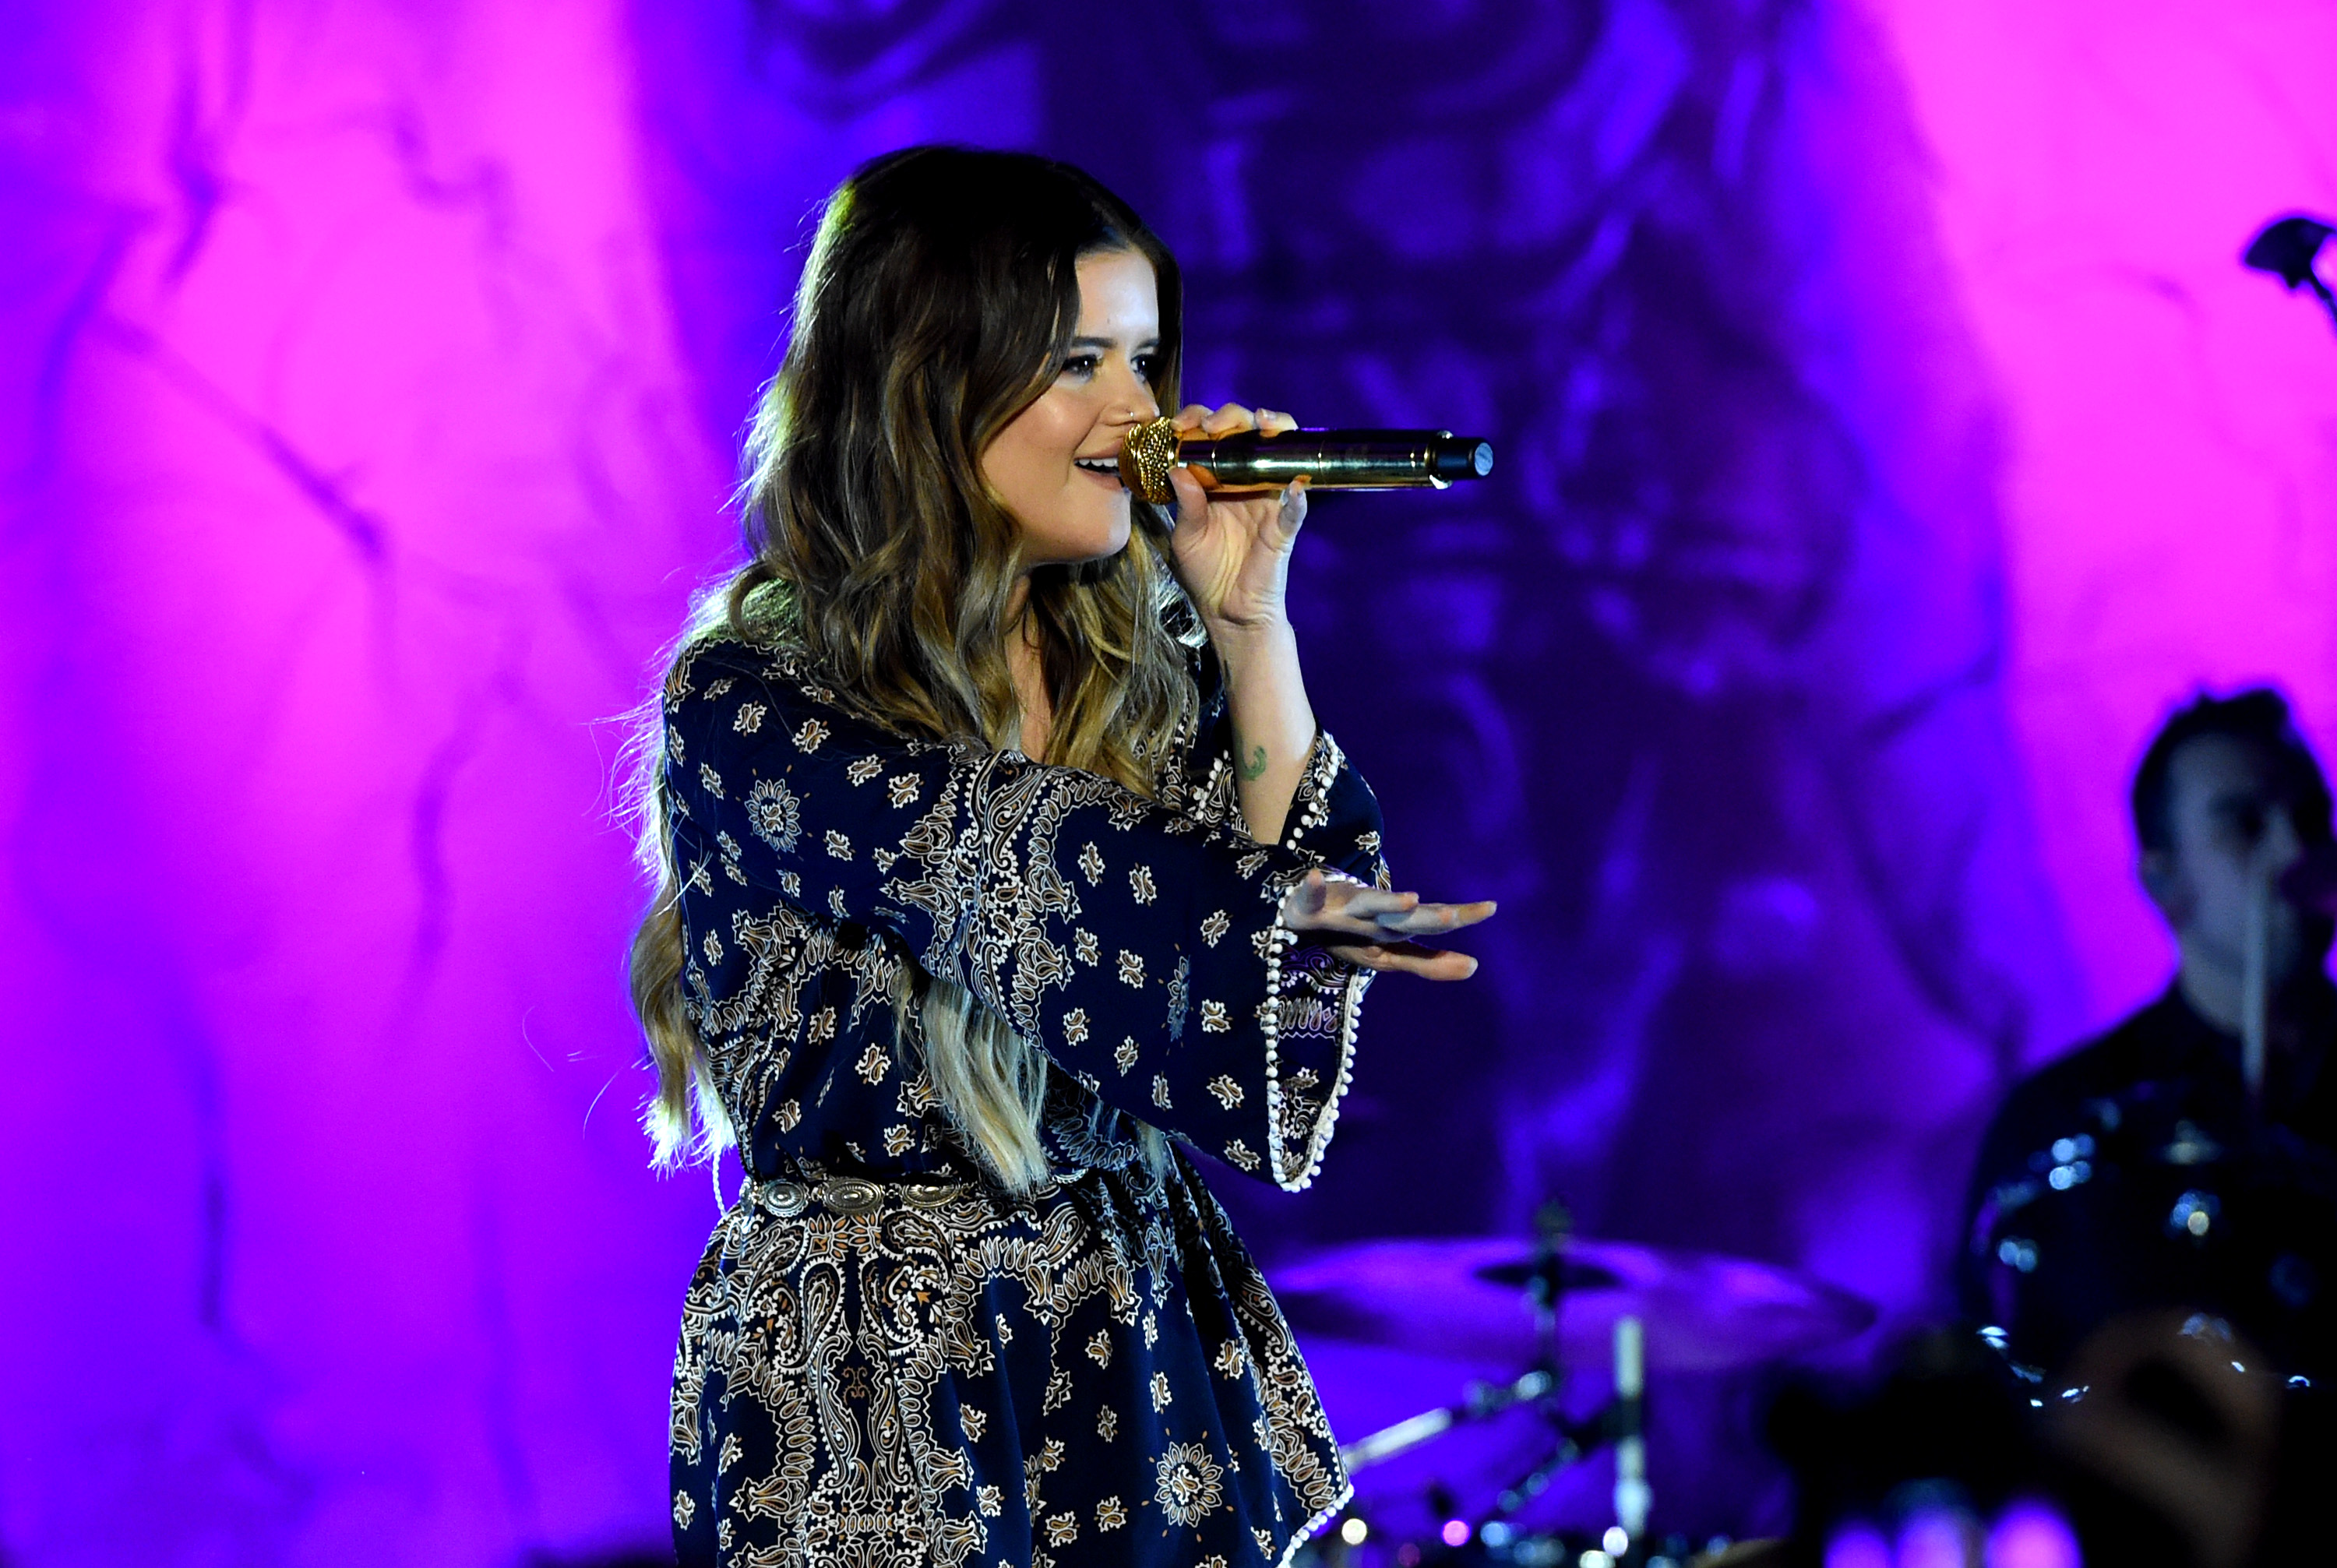 Maren Morris; Photo by Rick Diamond/Getty Images for CRS